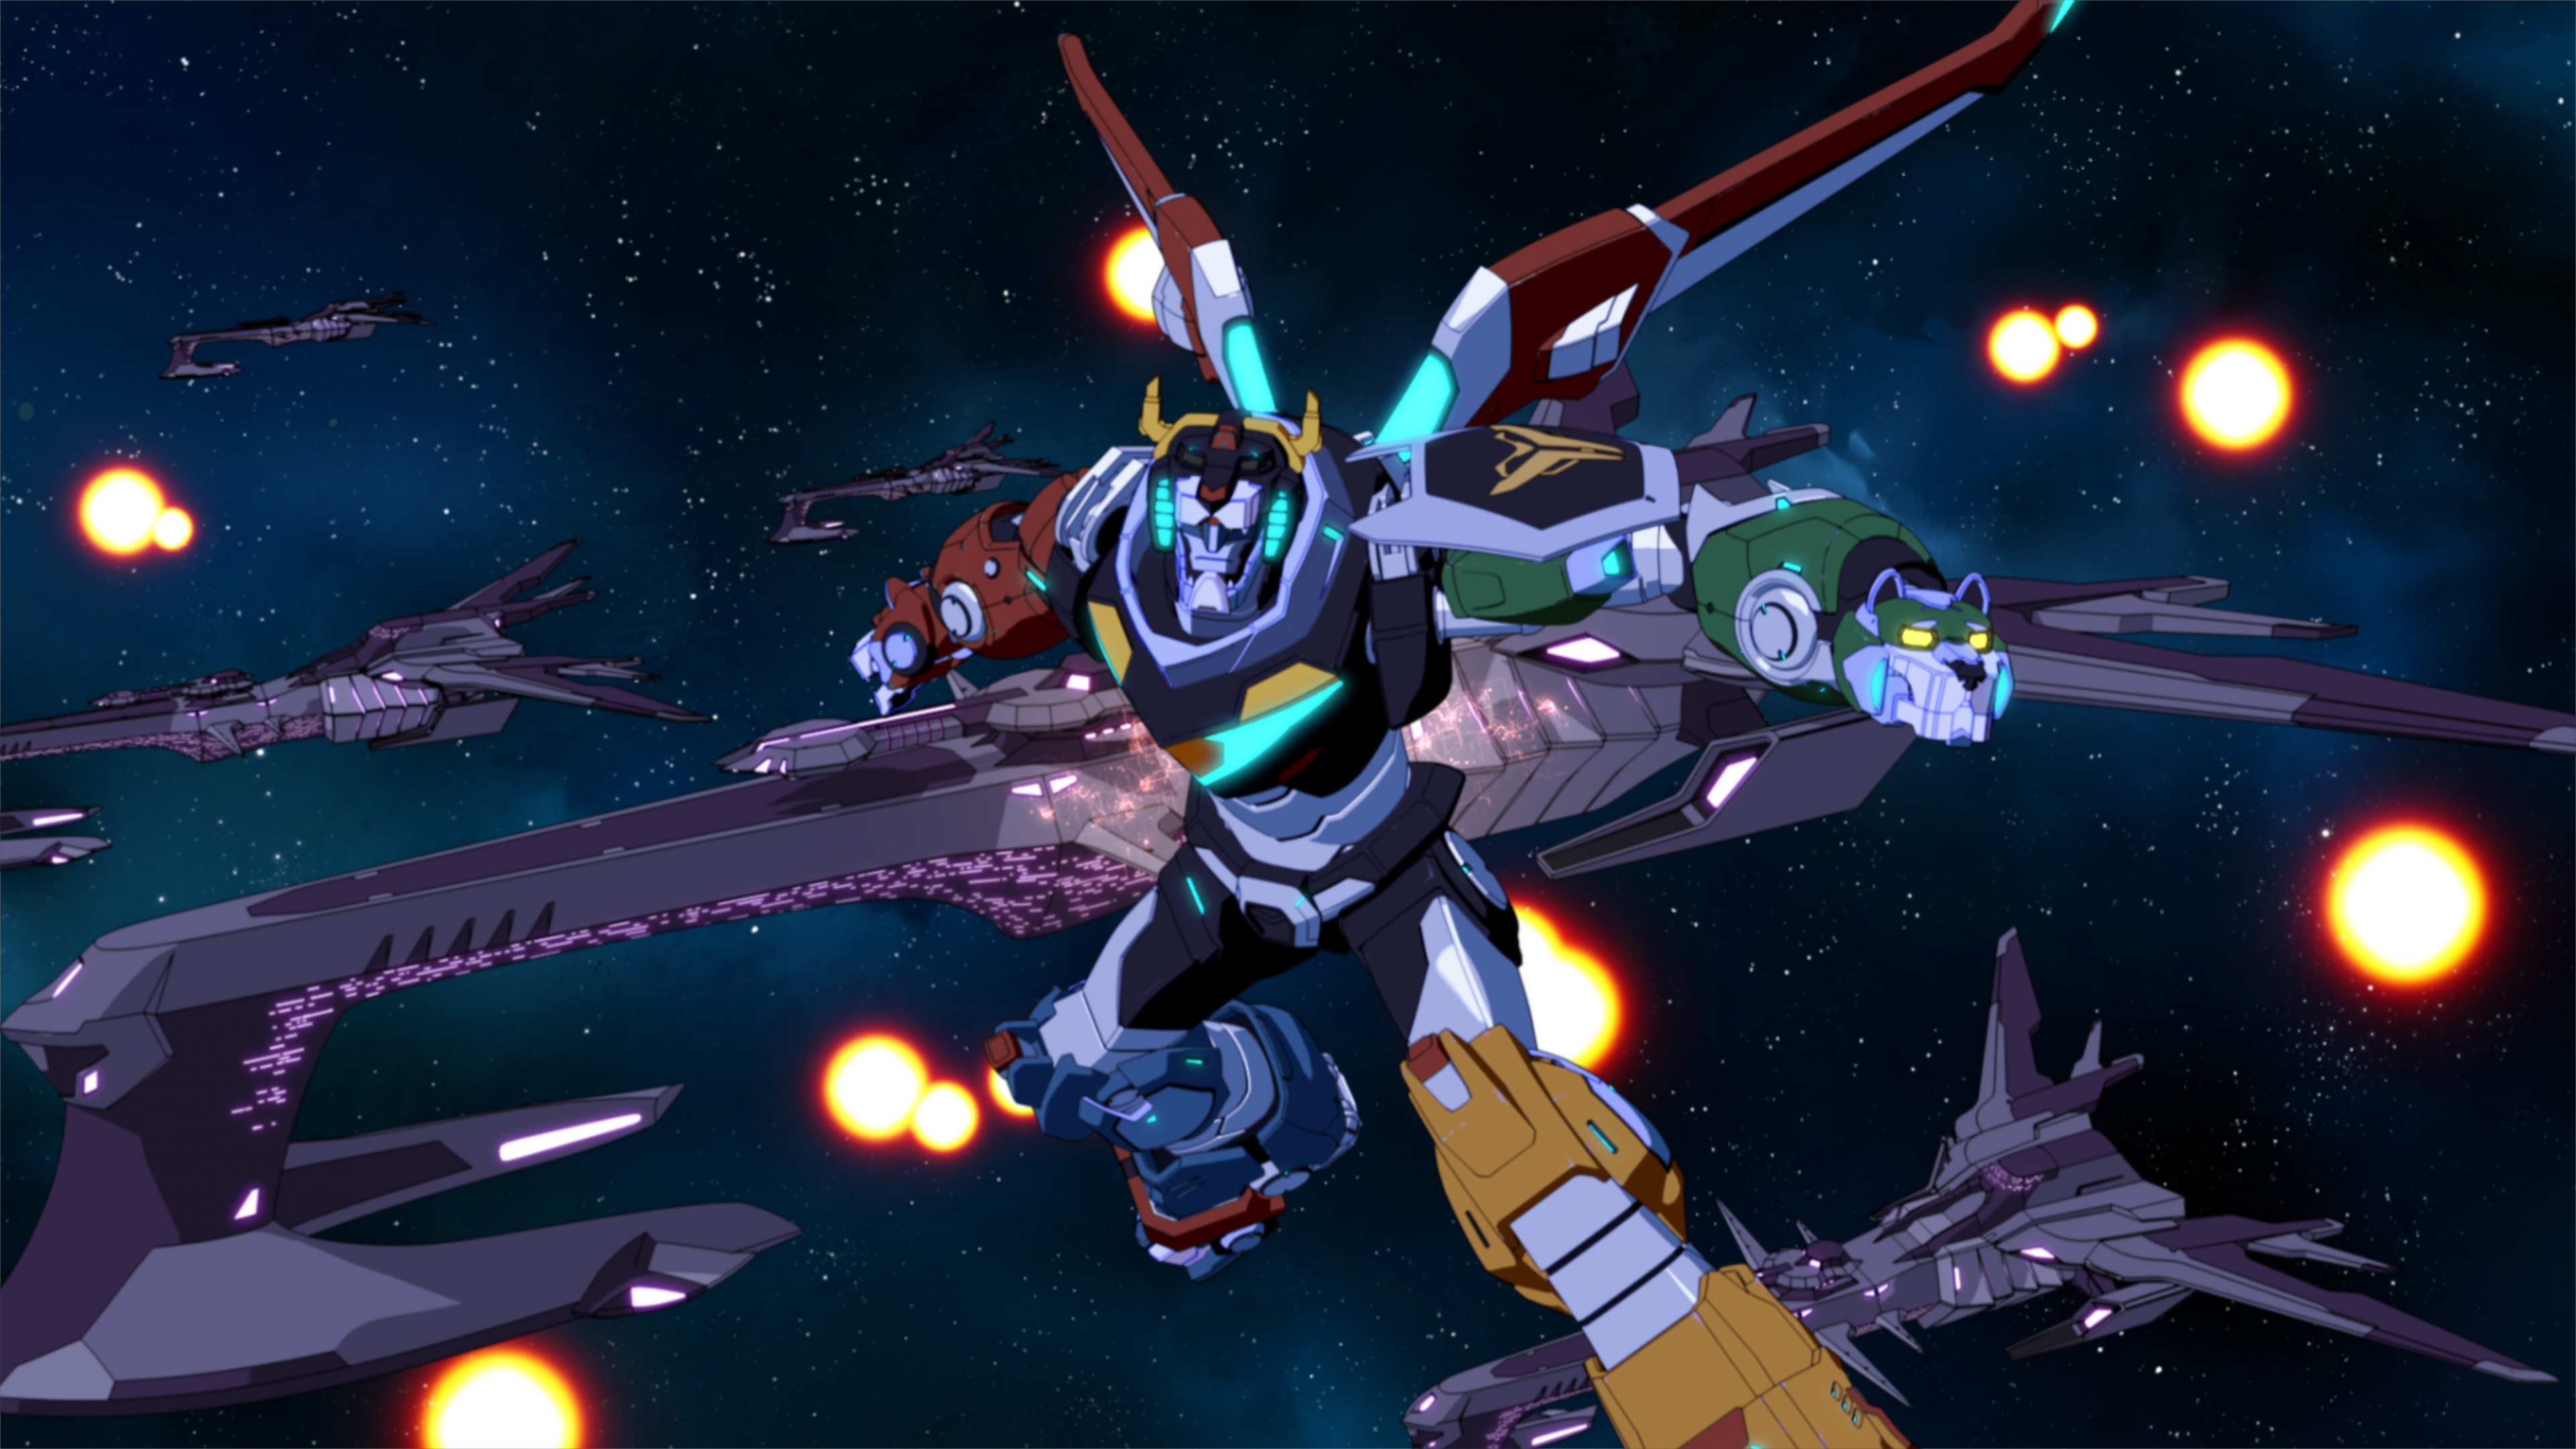 Voltron Legendary Defender Season 4 Gets A New Trailer